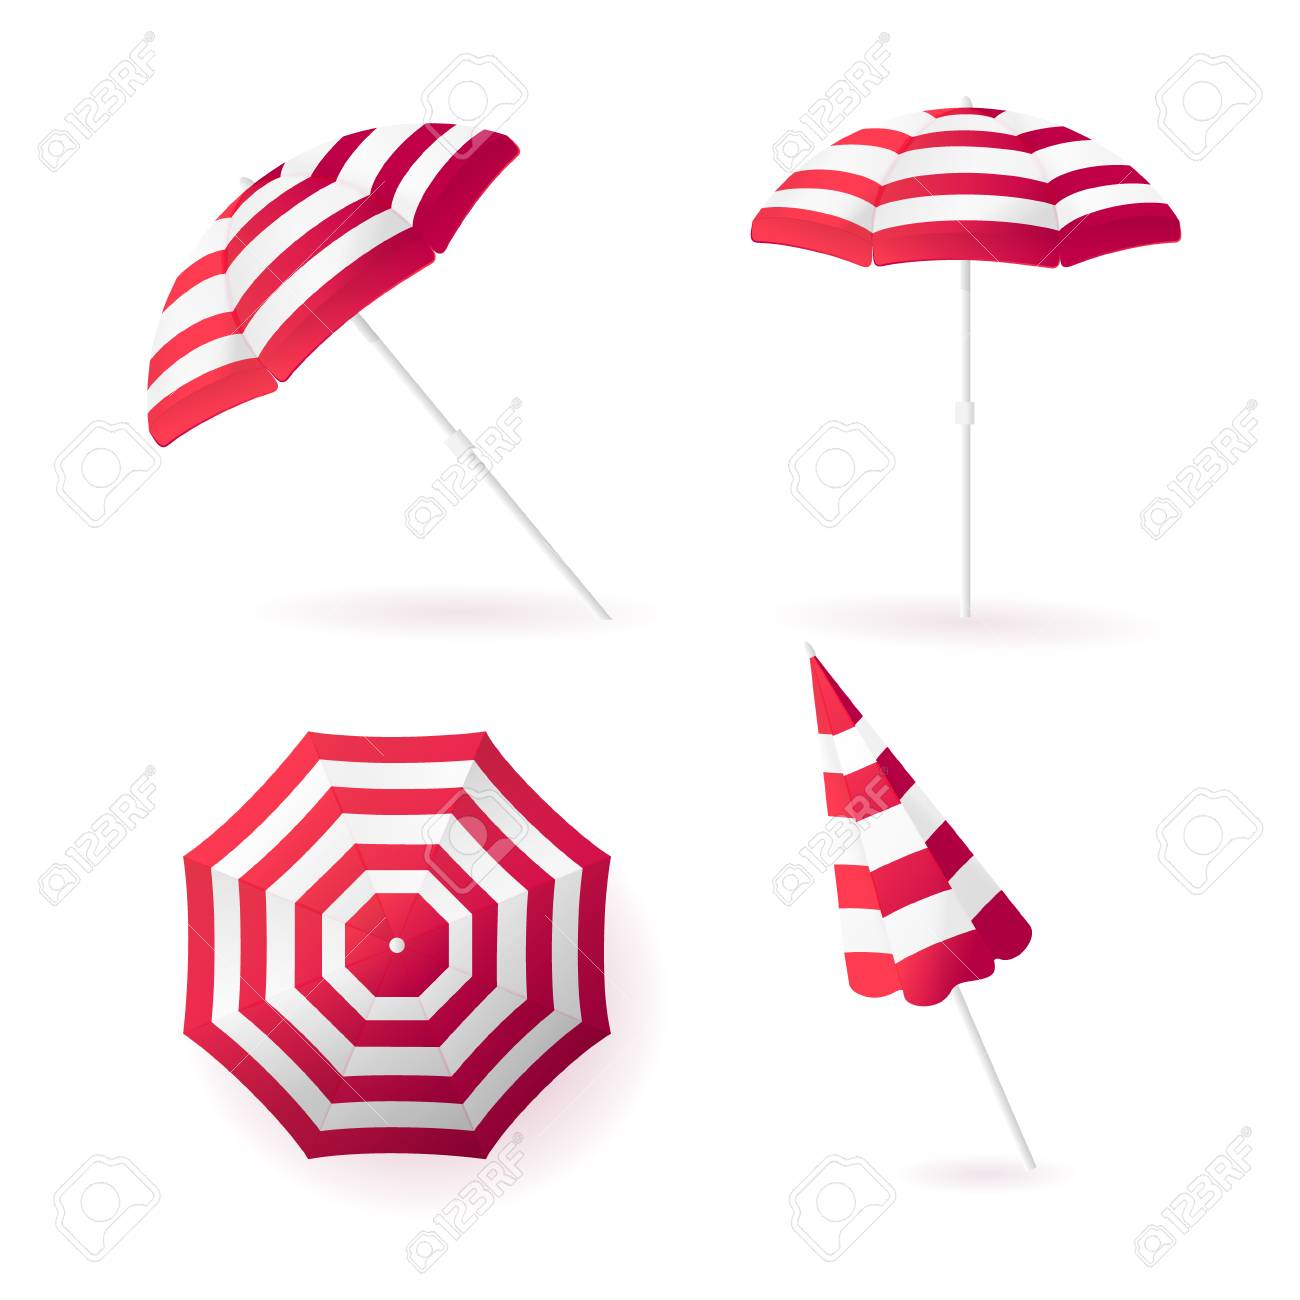 Beach sun umbrellas collection. Red striped awning. Vector illustration.  Stock Vector - 76779029